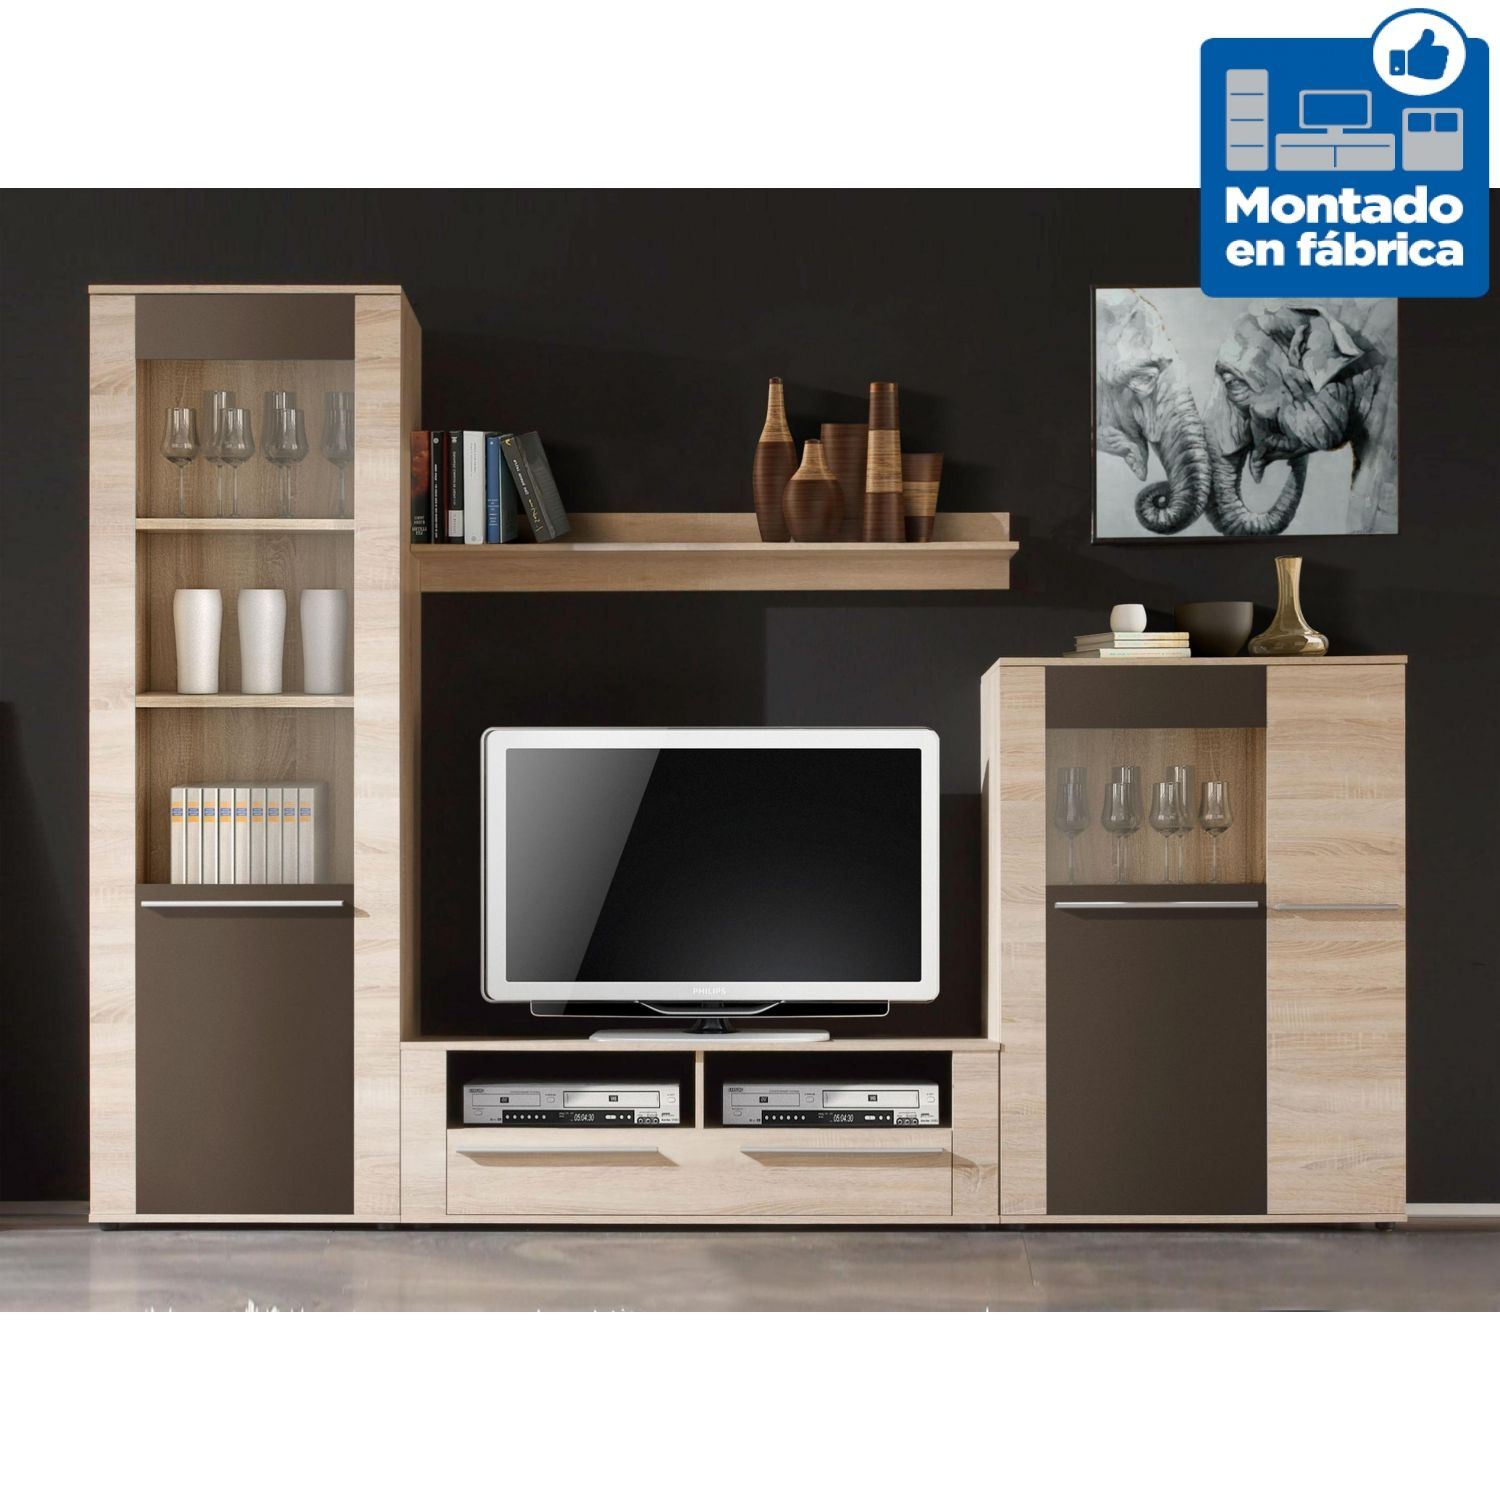 Apilable de sal n econ mico dise o moderno 180 cm mueble for Mueble apilable salon